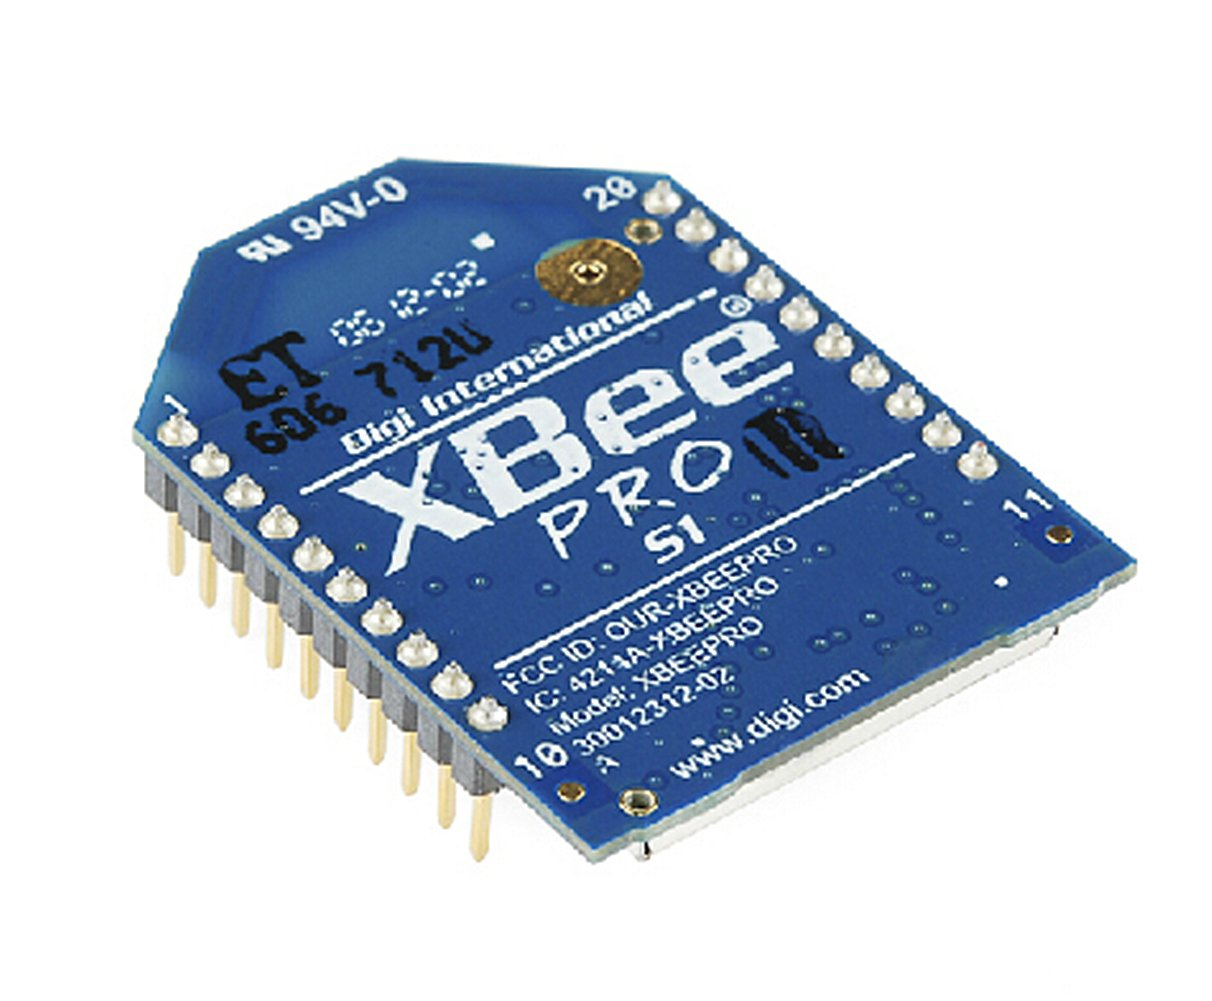 Xbee Pro 60mw PCB Antenna - Series 1computers, Systems, Really Anything With A Serial Port! Point To Point And Multi-Point Networks Are Supported